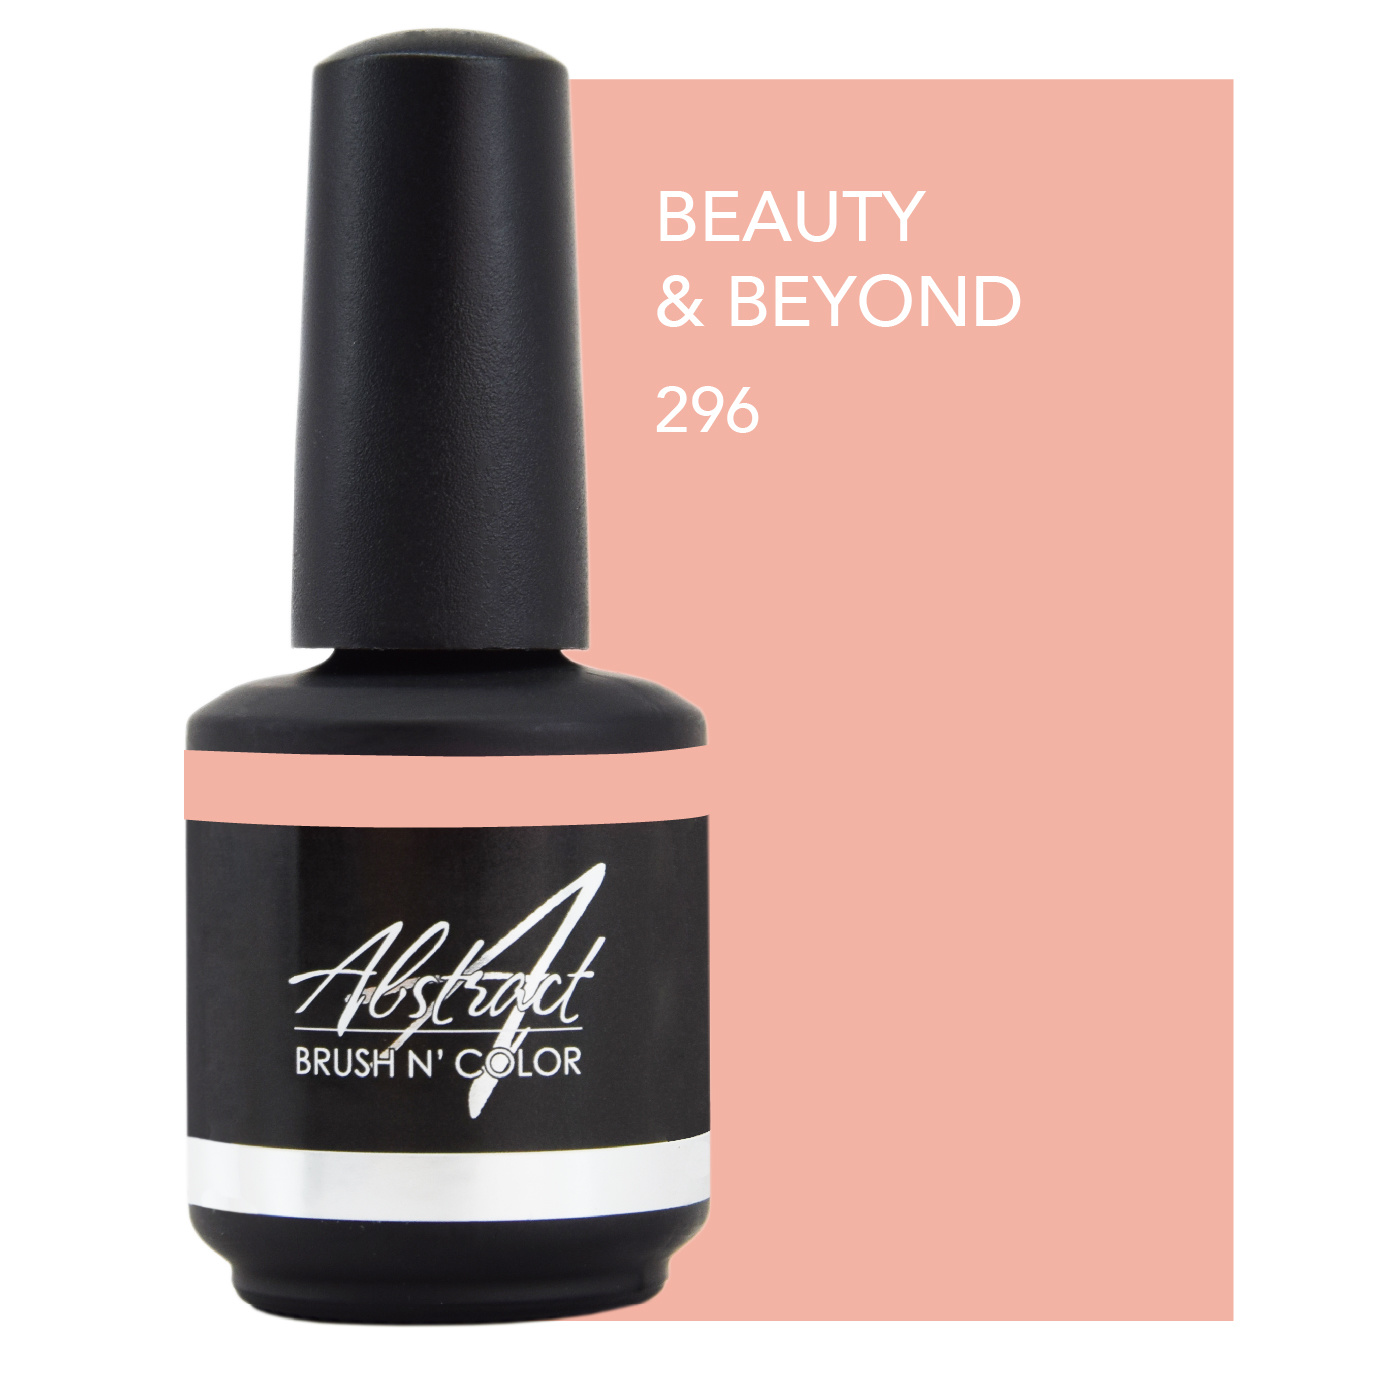 Abstract Brush N' Color 15 ml Beauty & Beyond